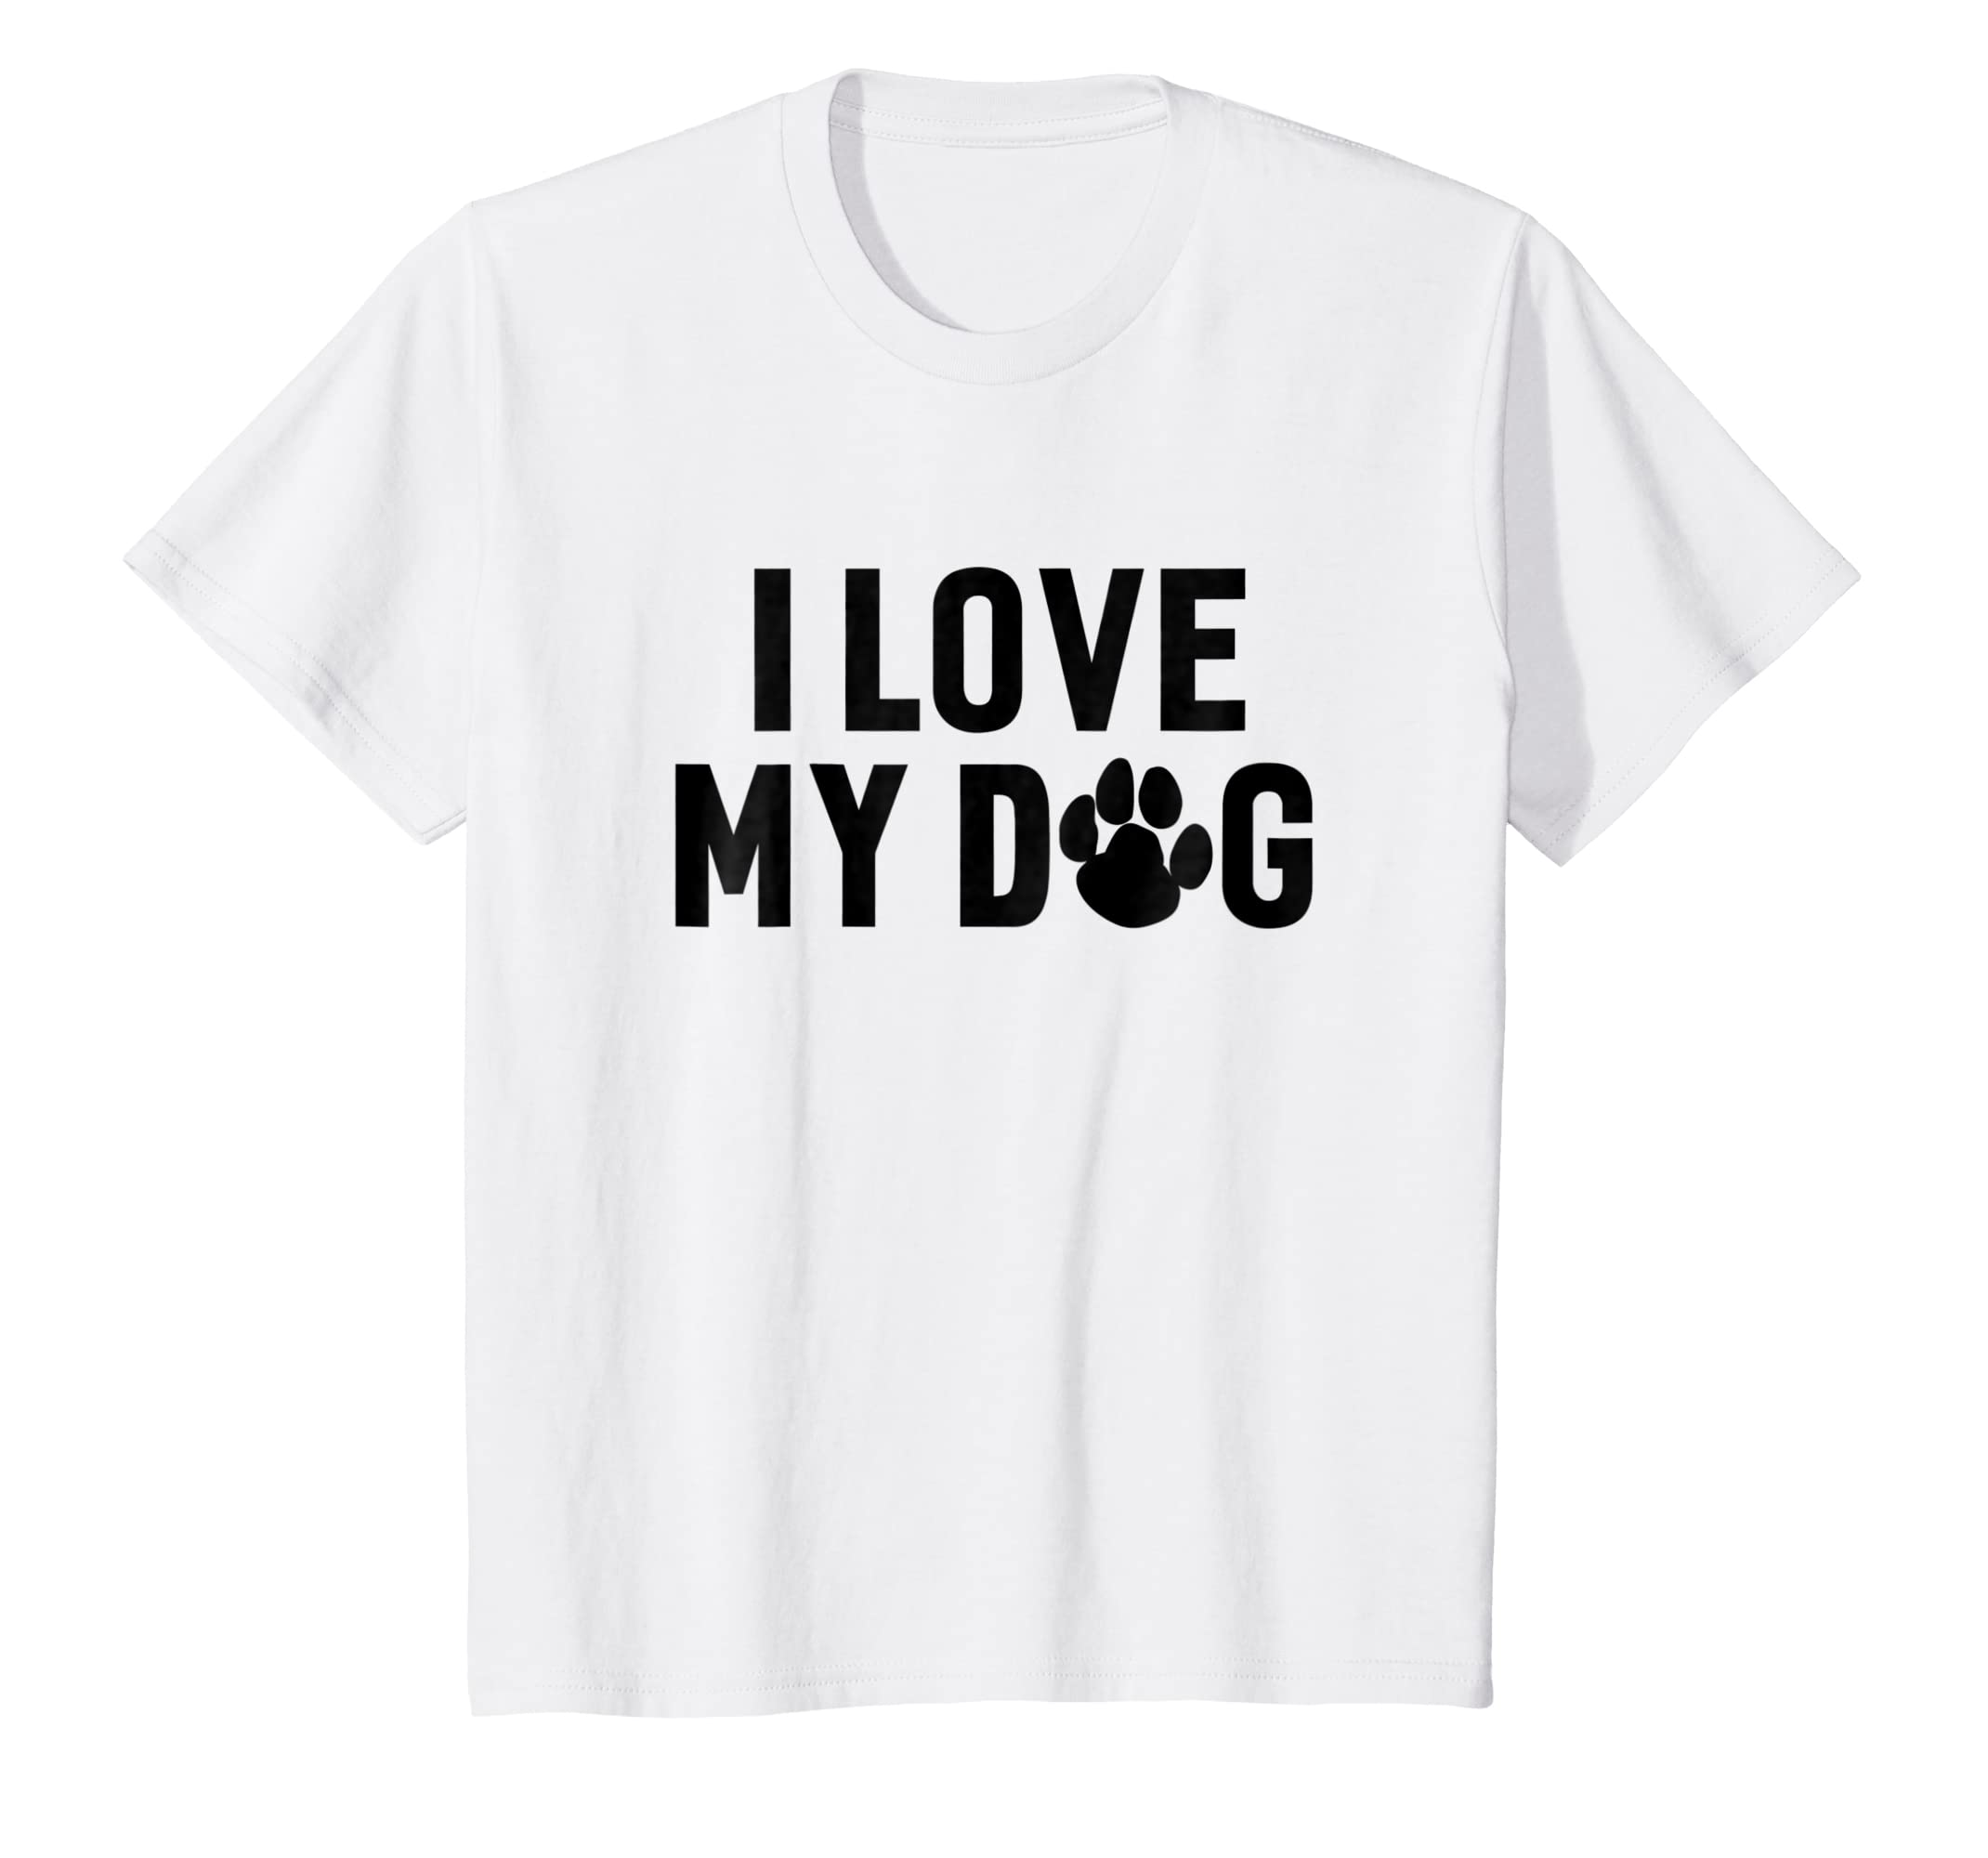 Kids I Love My Dog Funny Hilarious Humor Dogs T shirt-Bawle